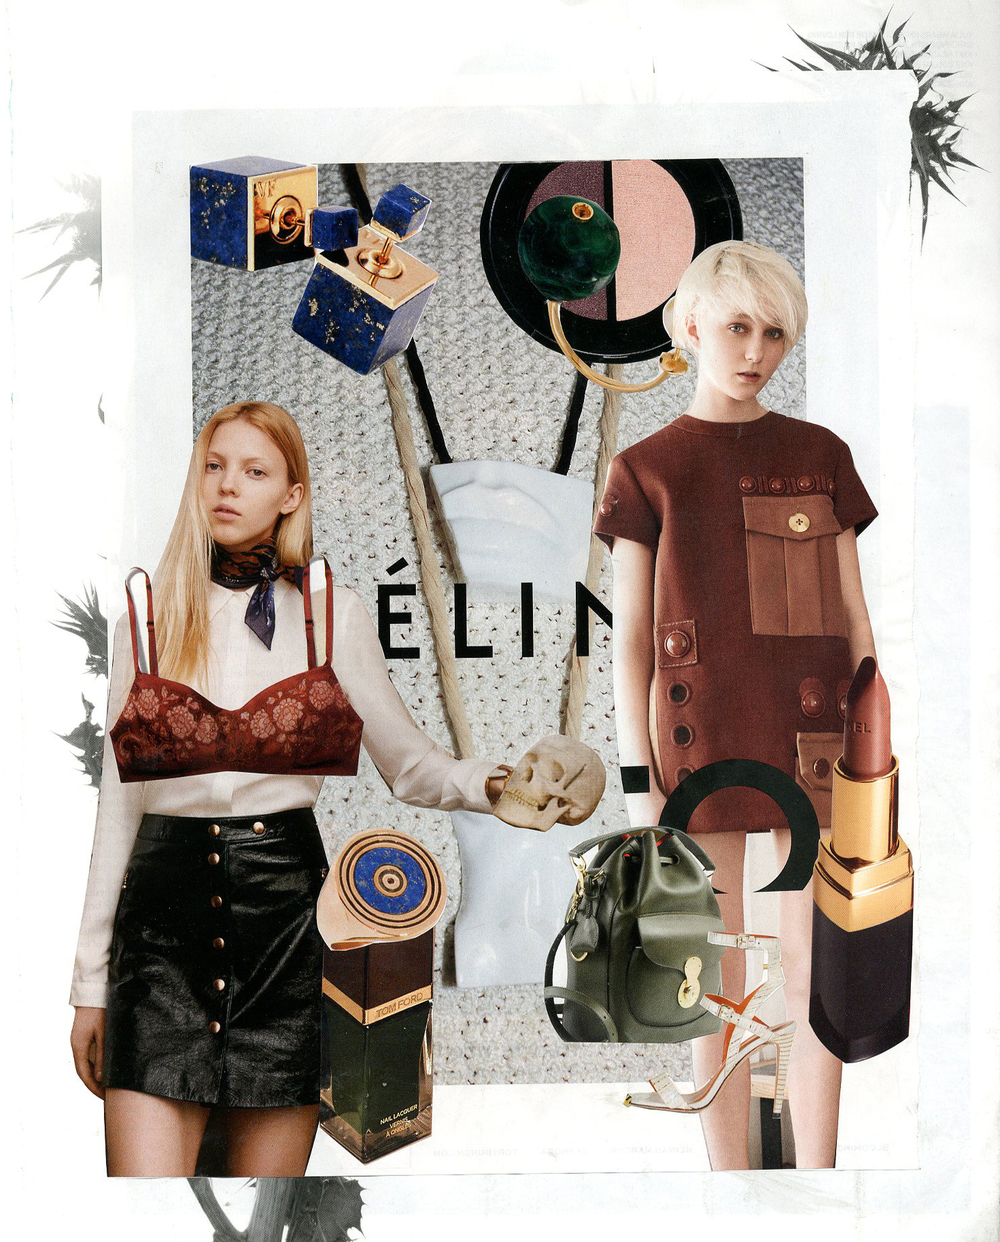 GIRLS WHO COLLAGE 2_Page_07 copy.jpg